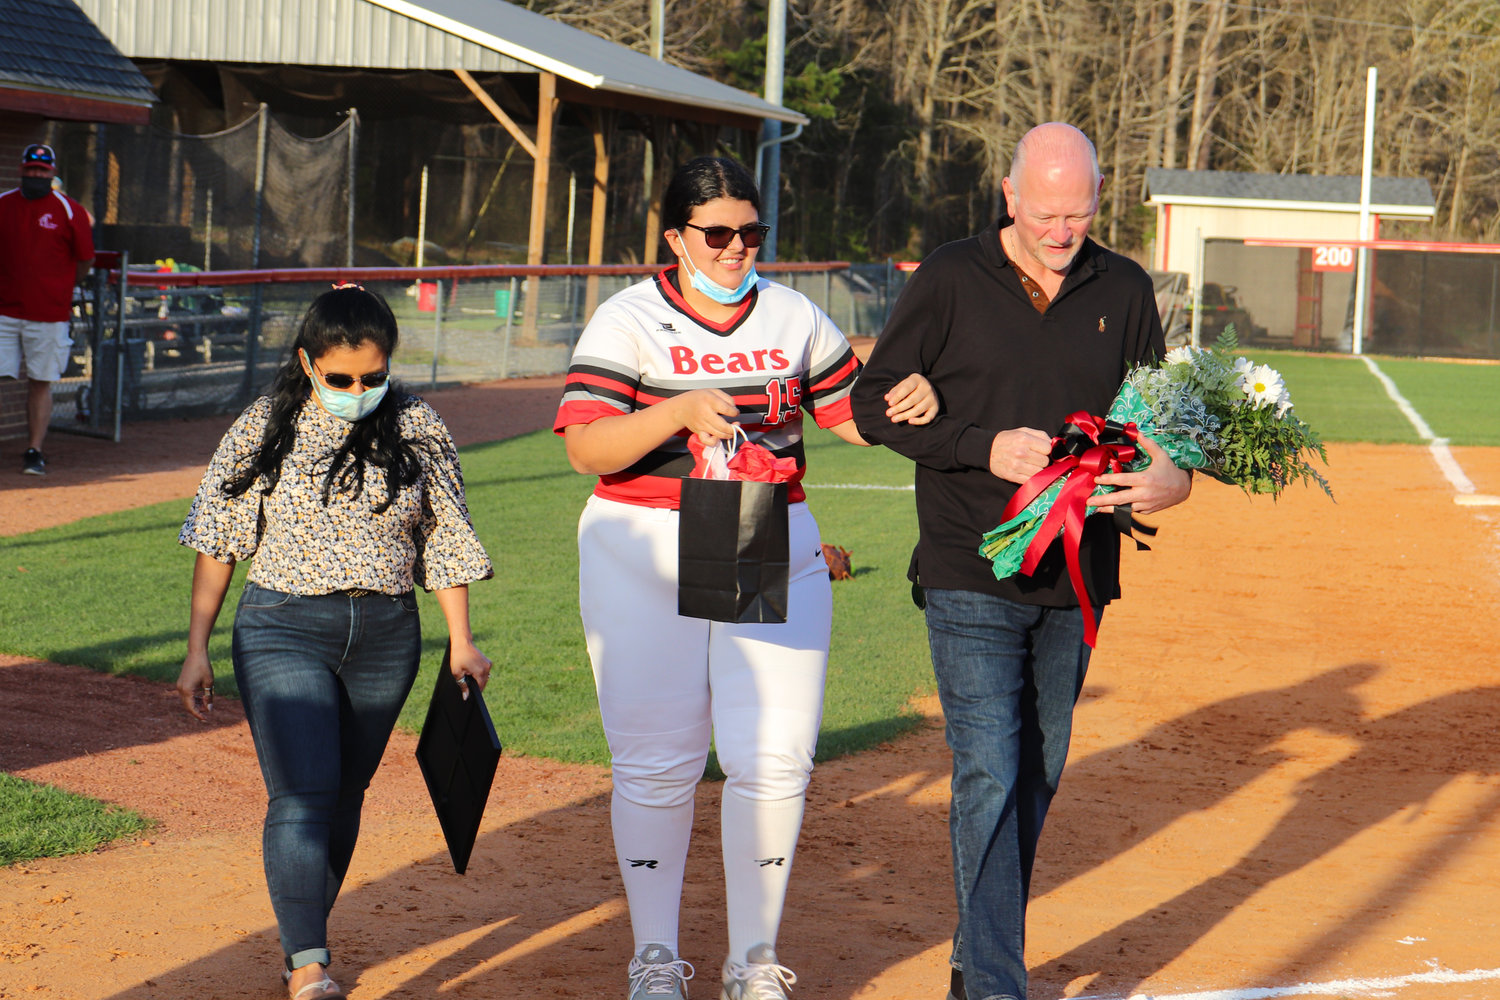 Chatham Central senior Katie Sanders (15) walks to home plate with her parents during the senior night festivities before the Bears' 12-0 win over North Rowan on March 30.